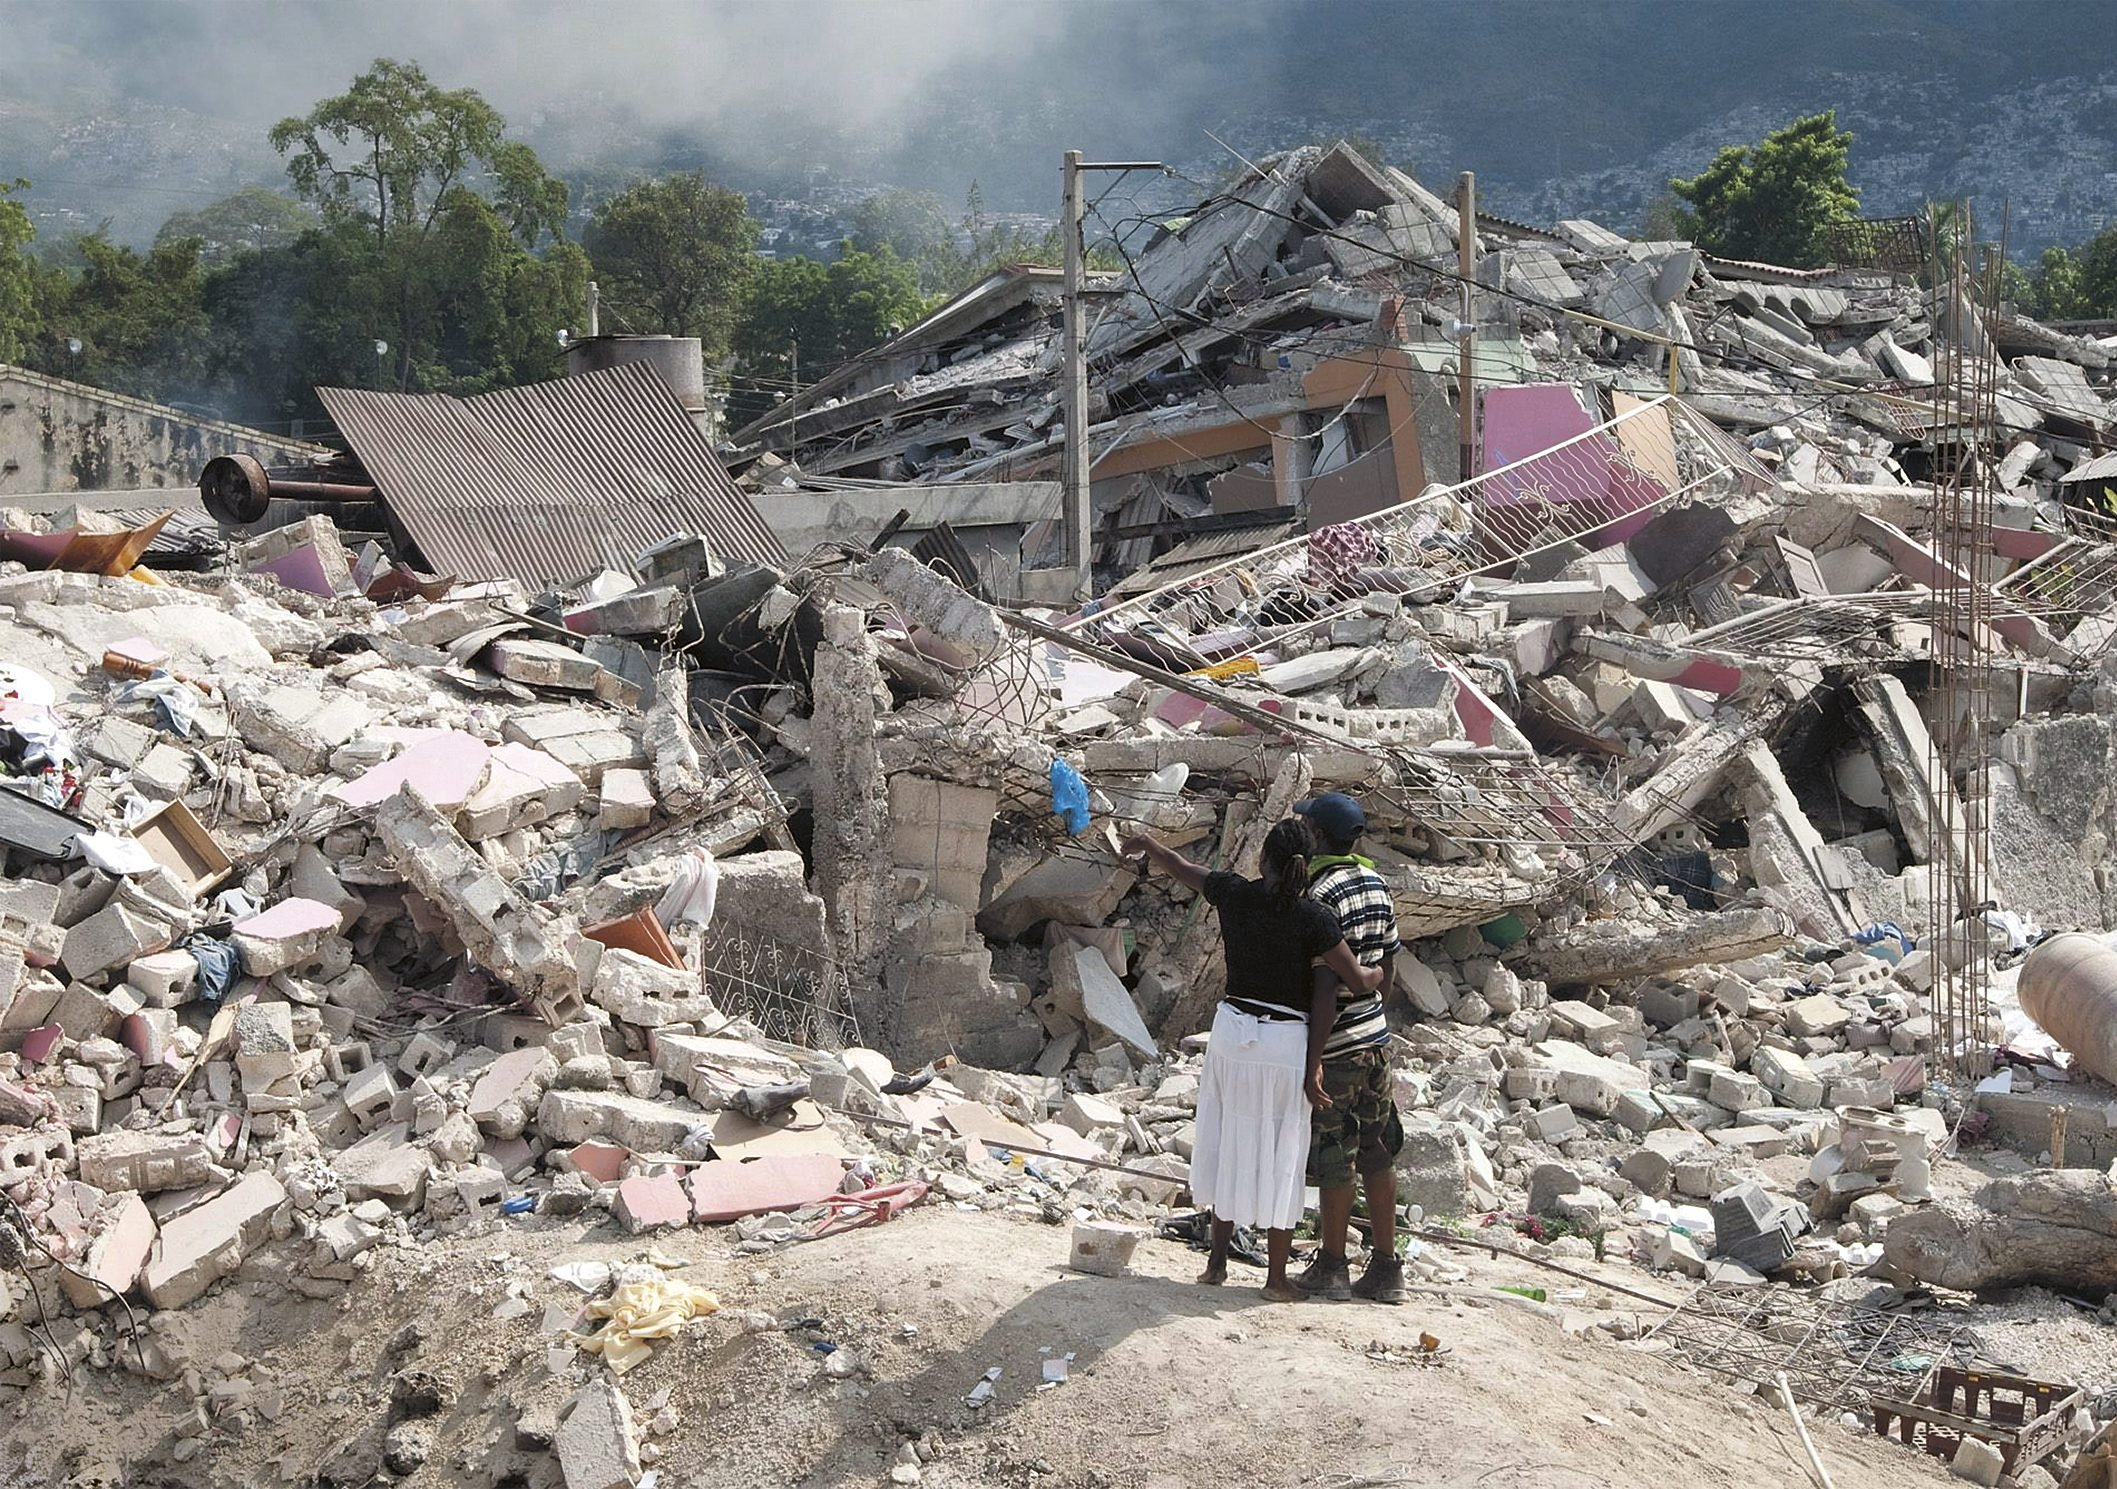 Port-au-Prince, Haiti, in the aftermath of the 2010 earthquake